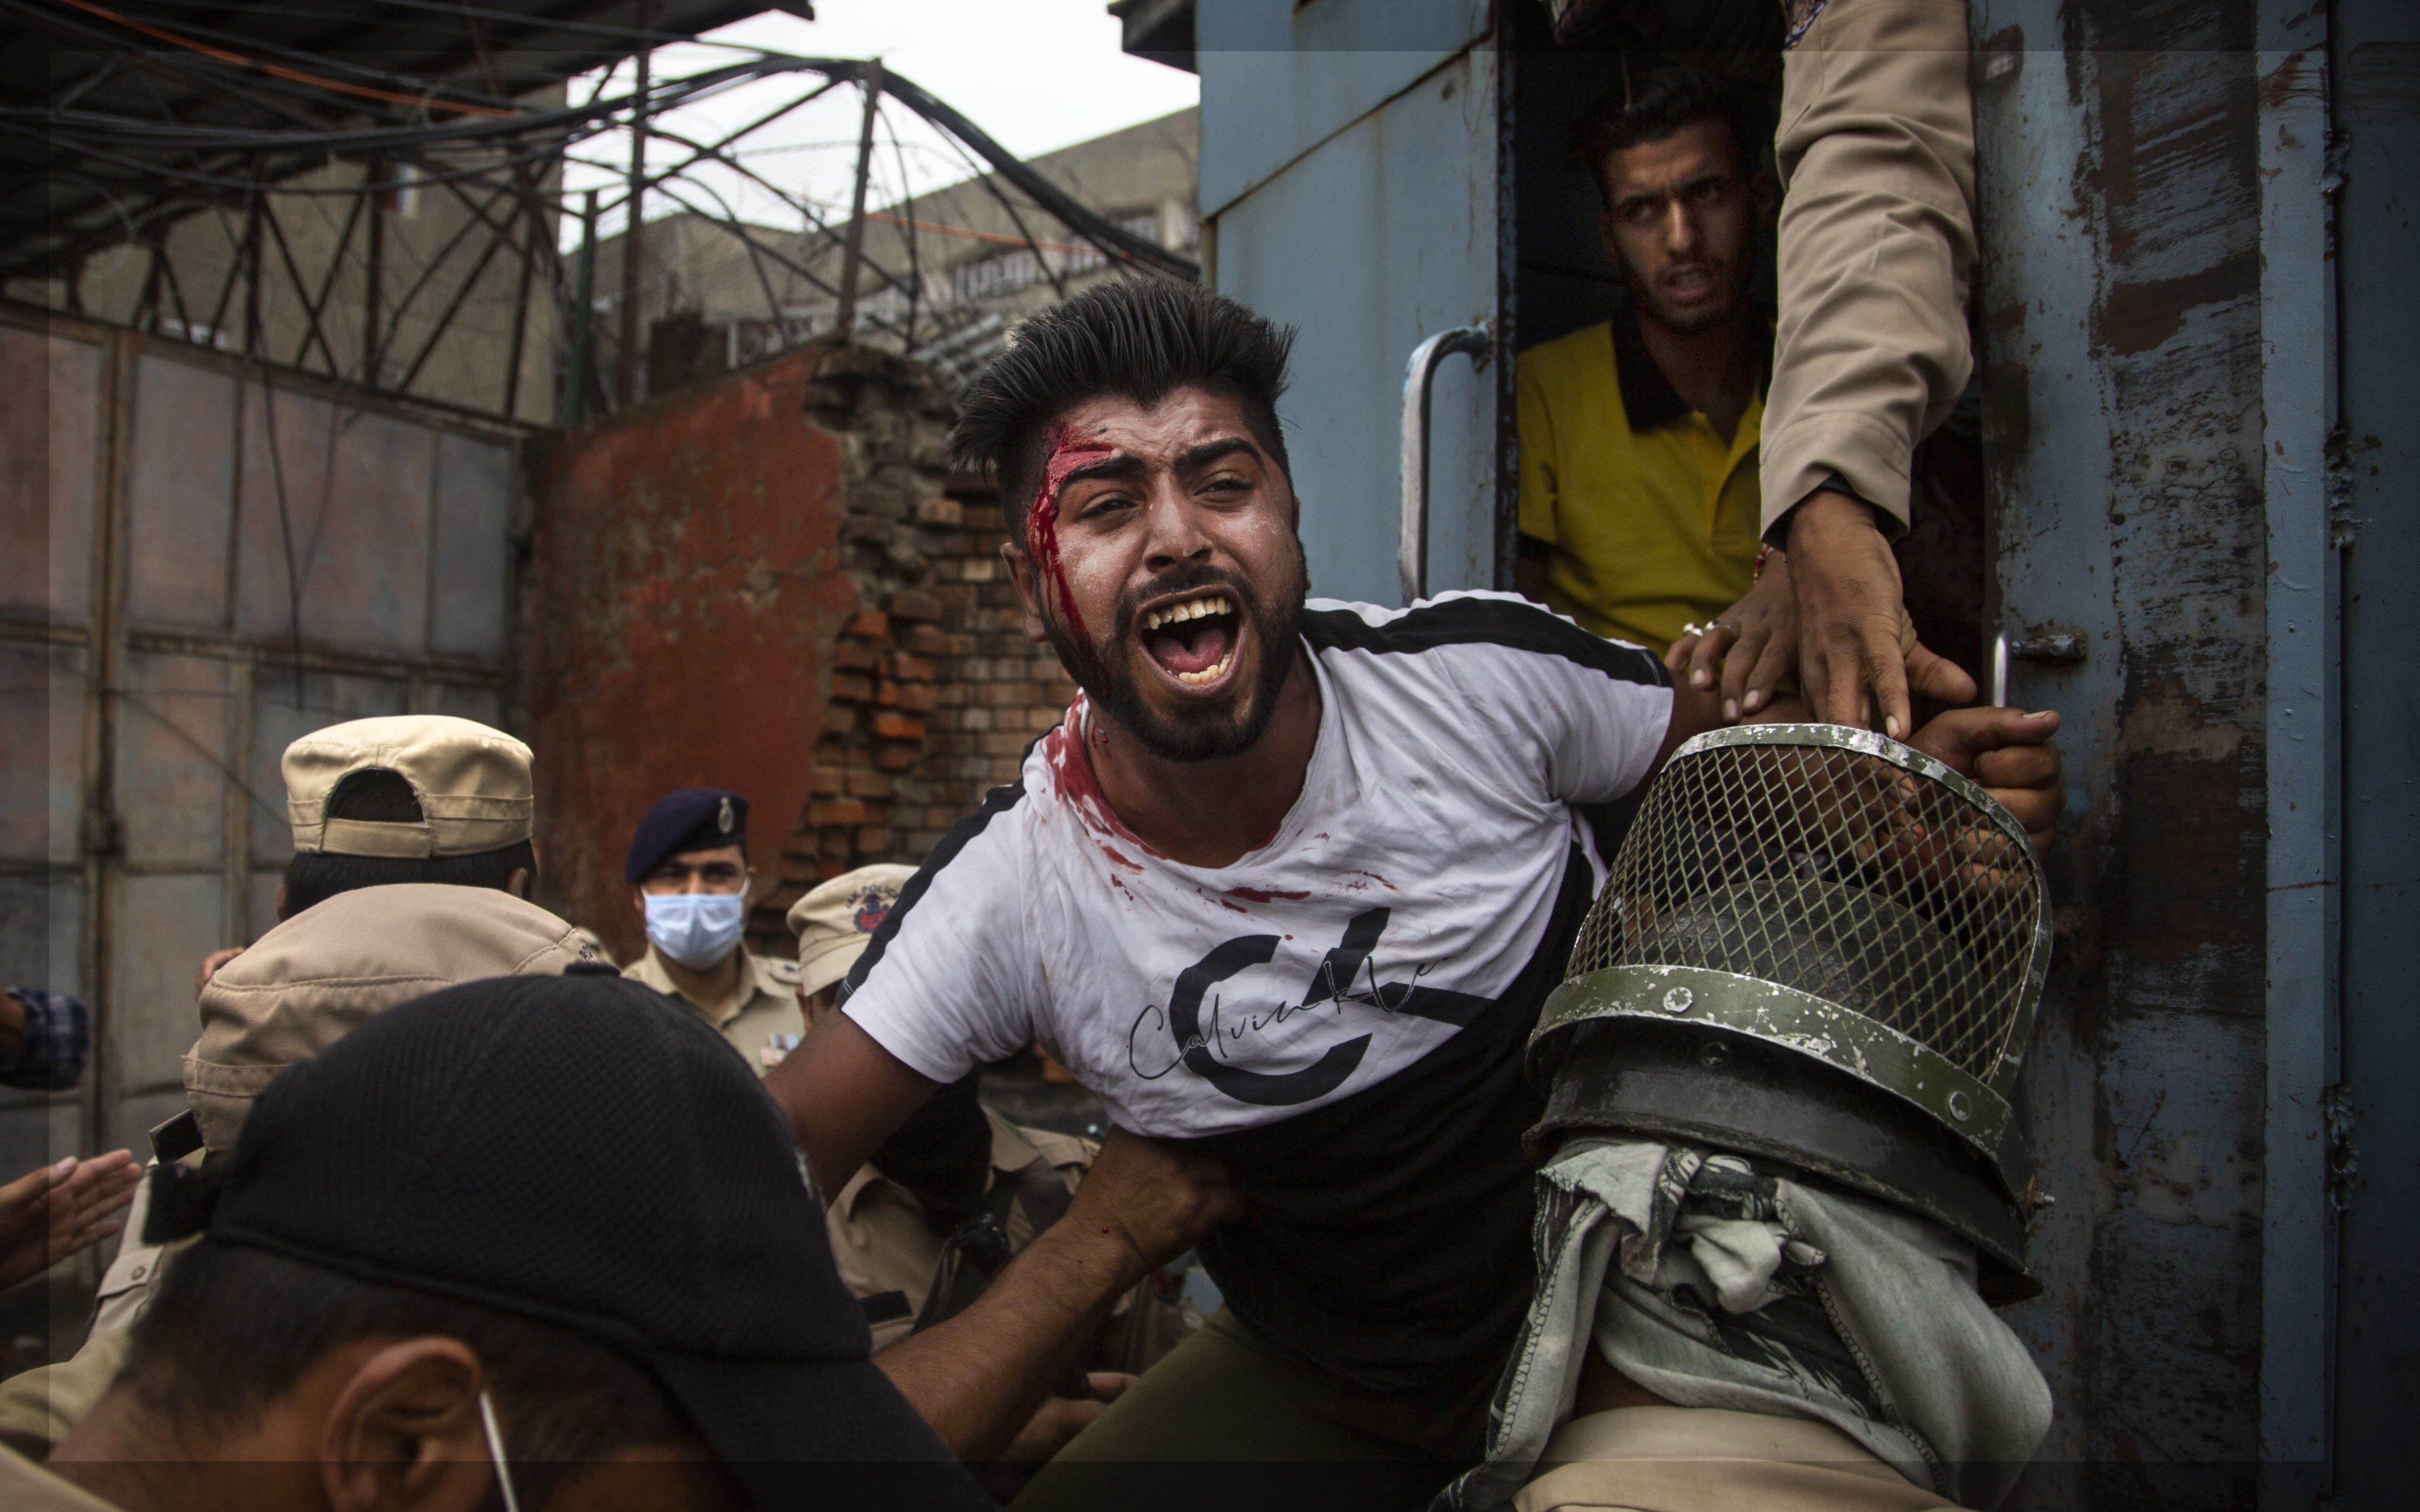 Indian policemen detain a Kashmiri Shiite Muslim as he attempt with others to take out a religious procession in Srinagar, Indian controlled Kashmir, Friday, Aug. 28, 2020. Police and paramilitary soldiers on Friday detain dozens of Muslims participating in religious processions in the Indian portion of Kashmir. Authorities had imposed restrictions in parts of Srinagar, the region's main city, to prevent gatherings marking Muharram from developing into anti-India protests. (AP Photo/Mukhtar Khan)